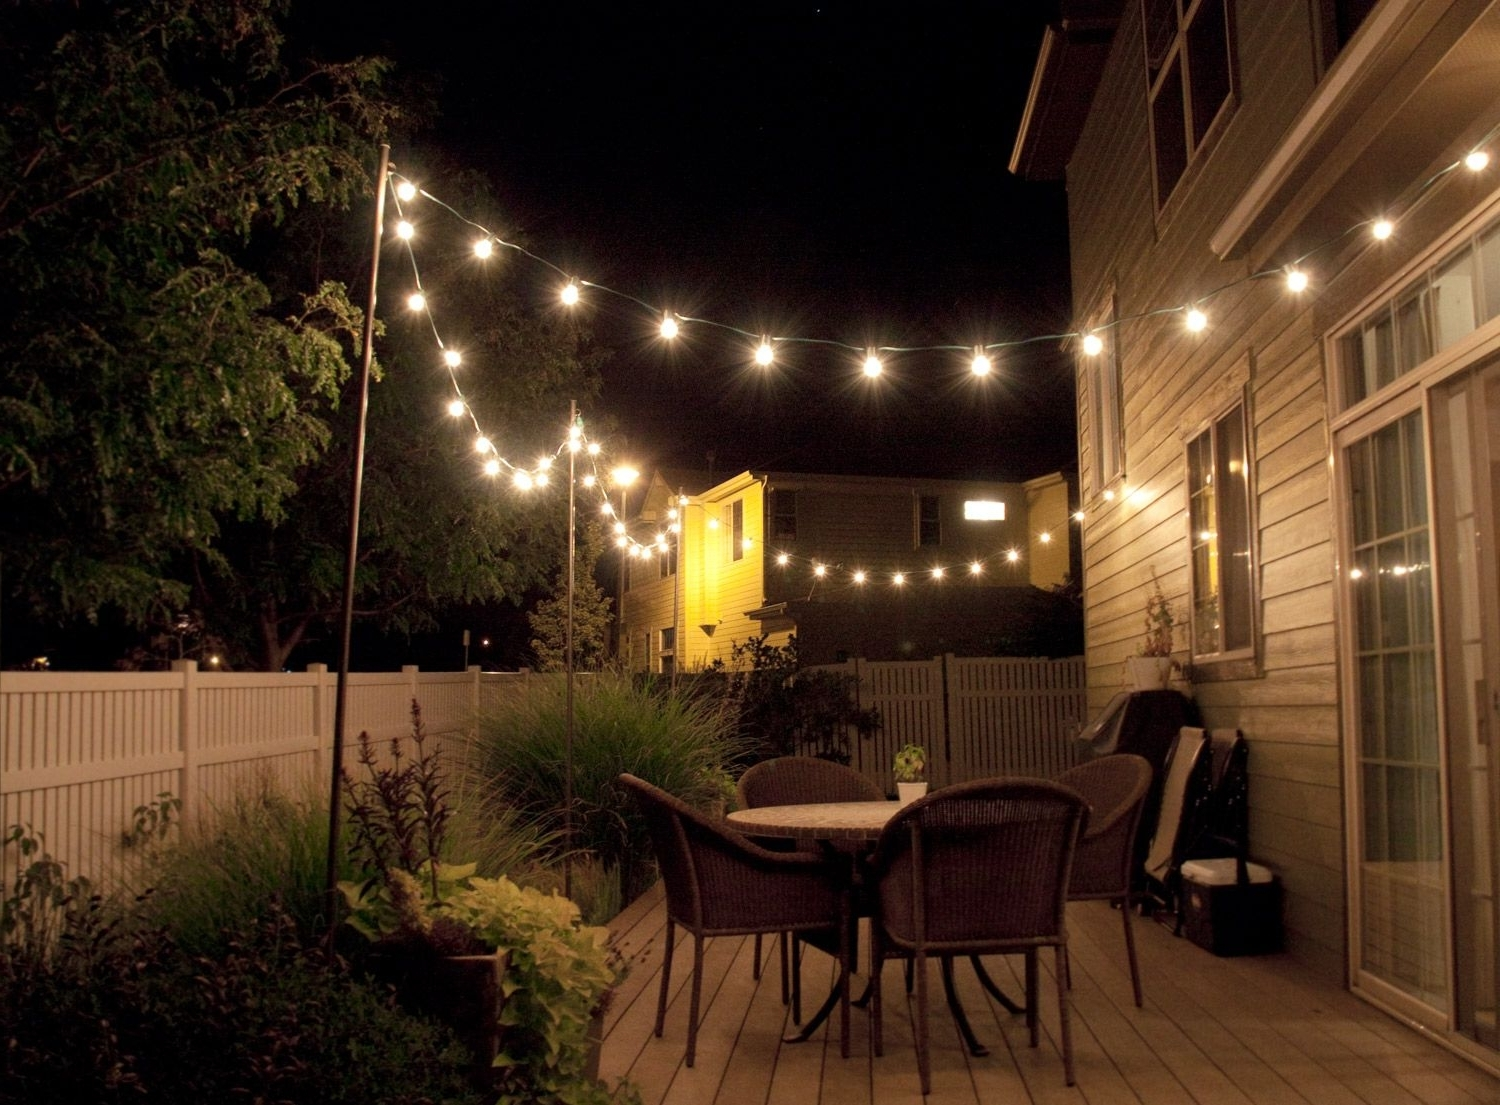 Latest How To Make Inexpensive Poles To Hang String Lights On – Café Style For Outdoor Hanging Lights On String (Gallery 2 of 20)